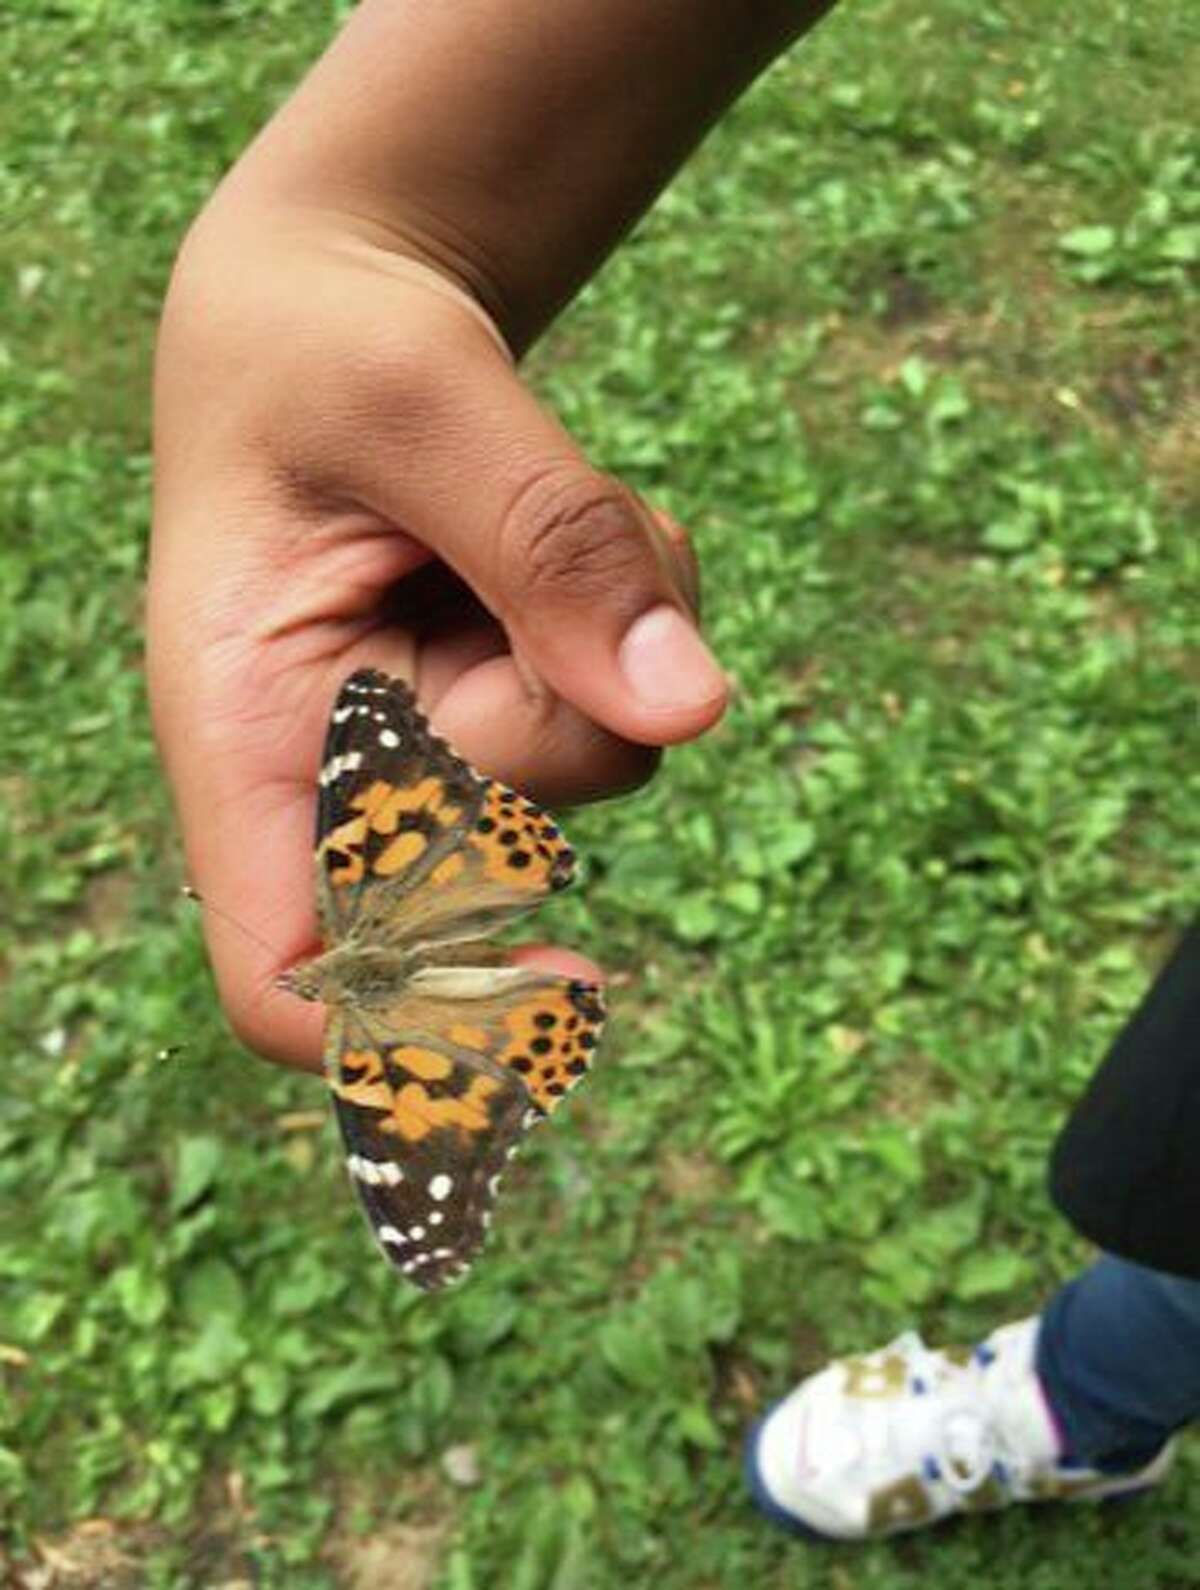 The event included a live butterfly release and special commemoration presentation. (Photo provided)